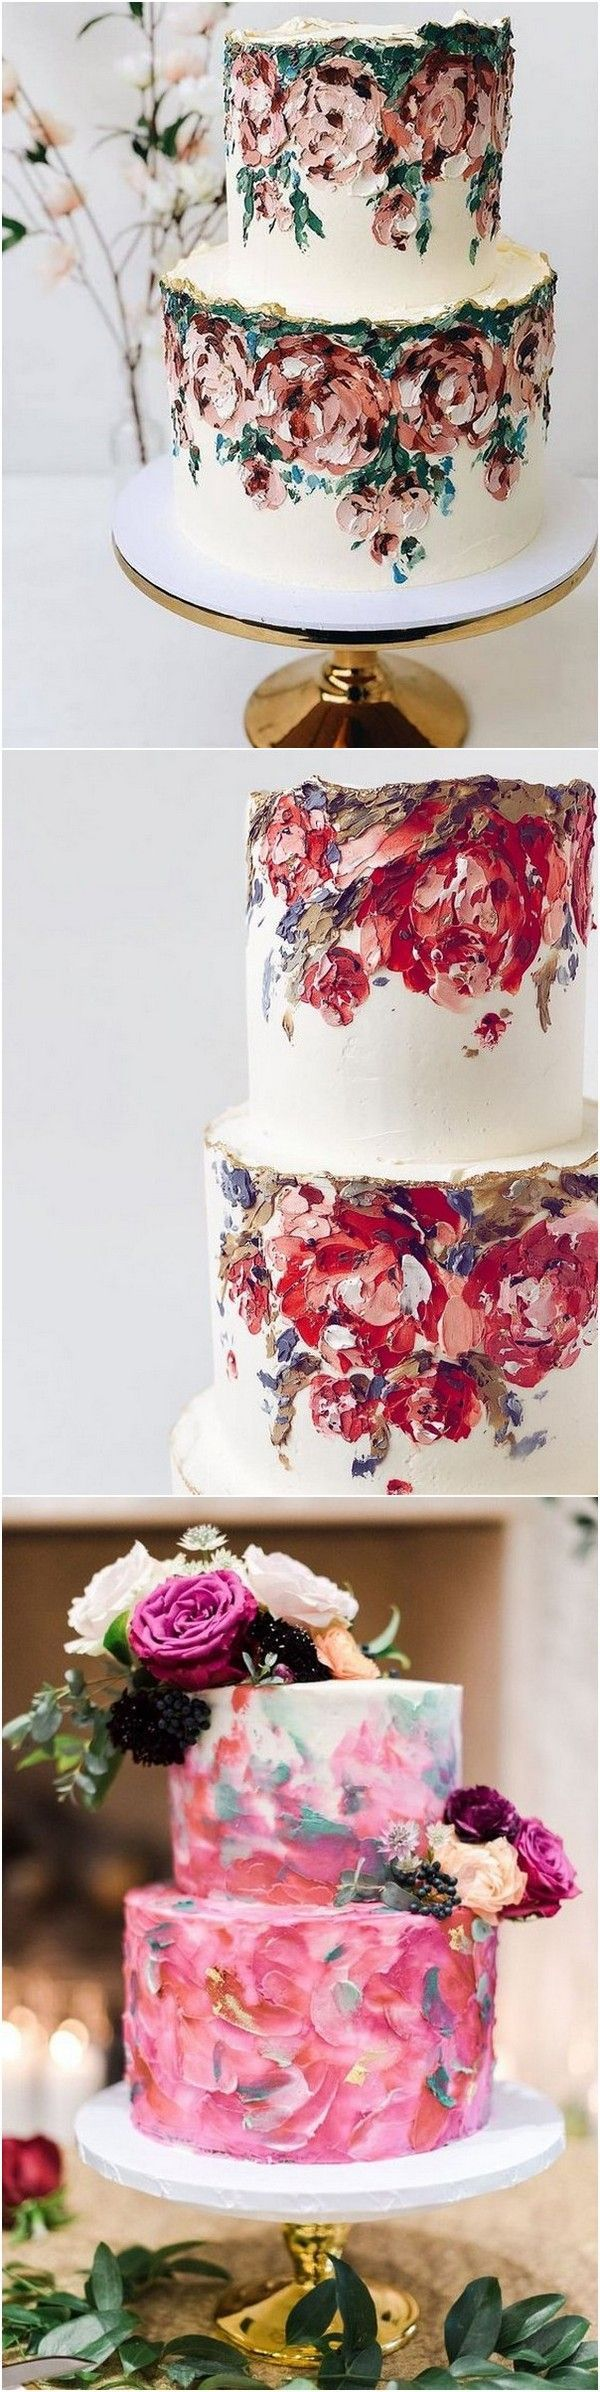 Trending-20 Gorgeous Hand-painted Wedding Cakes for 2019 #cakedecorating